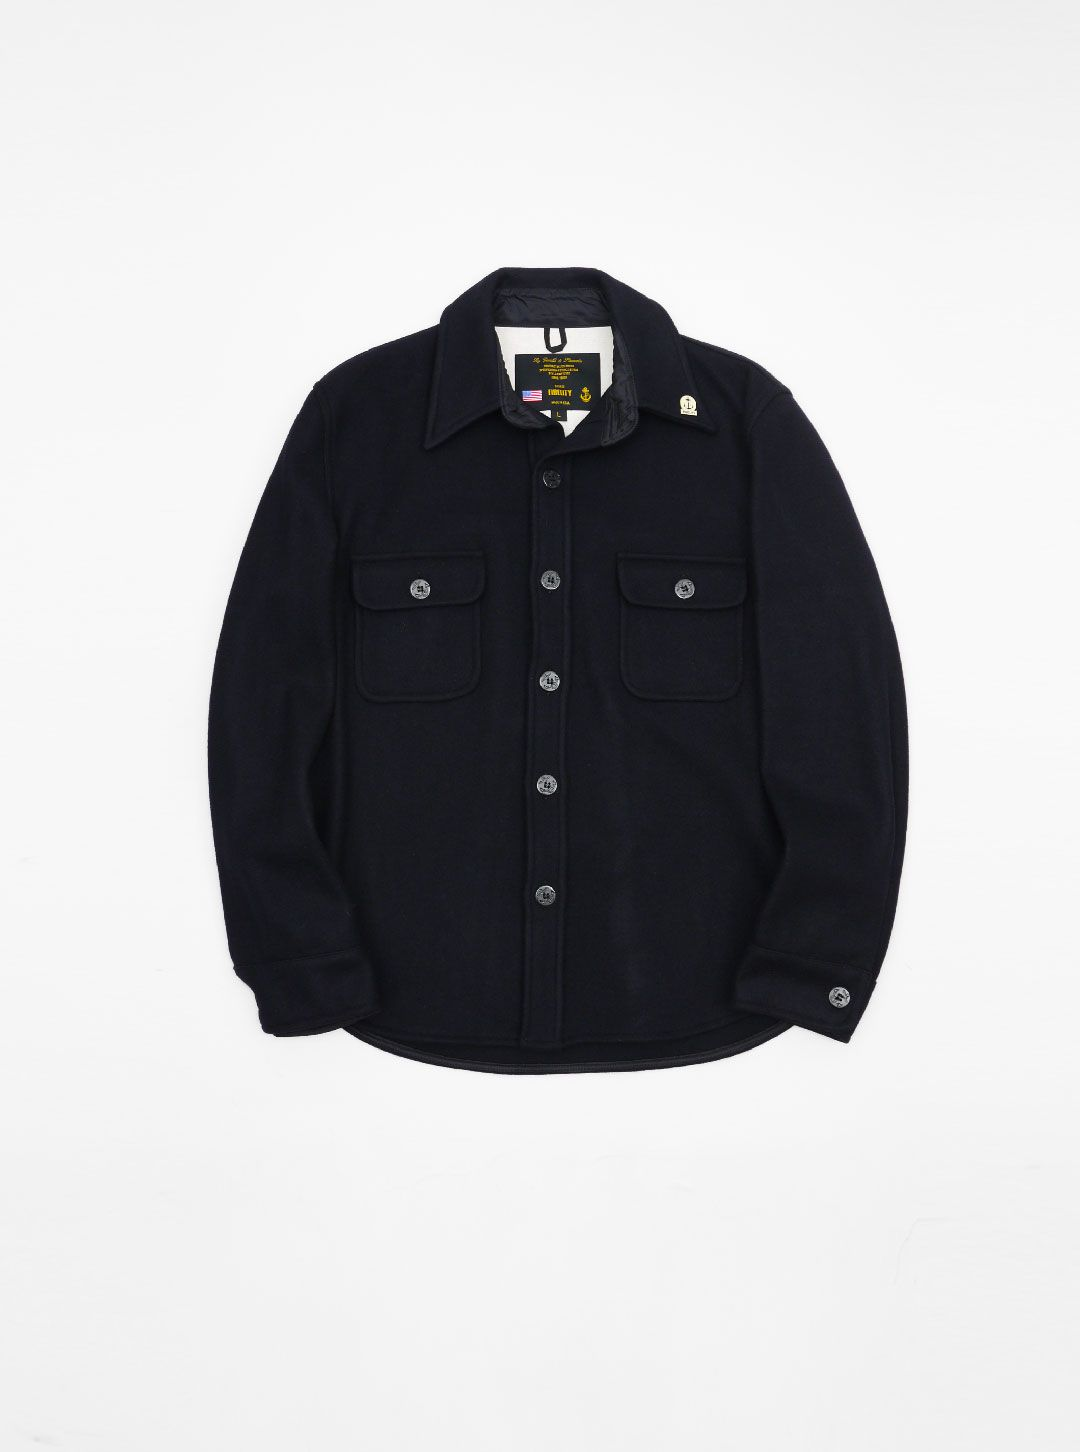 Fidelity CPO Shirt Navy (With images)   Shirts, Jackets ...